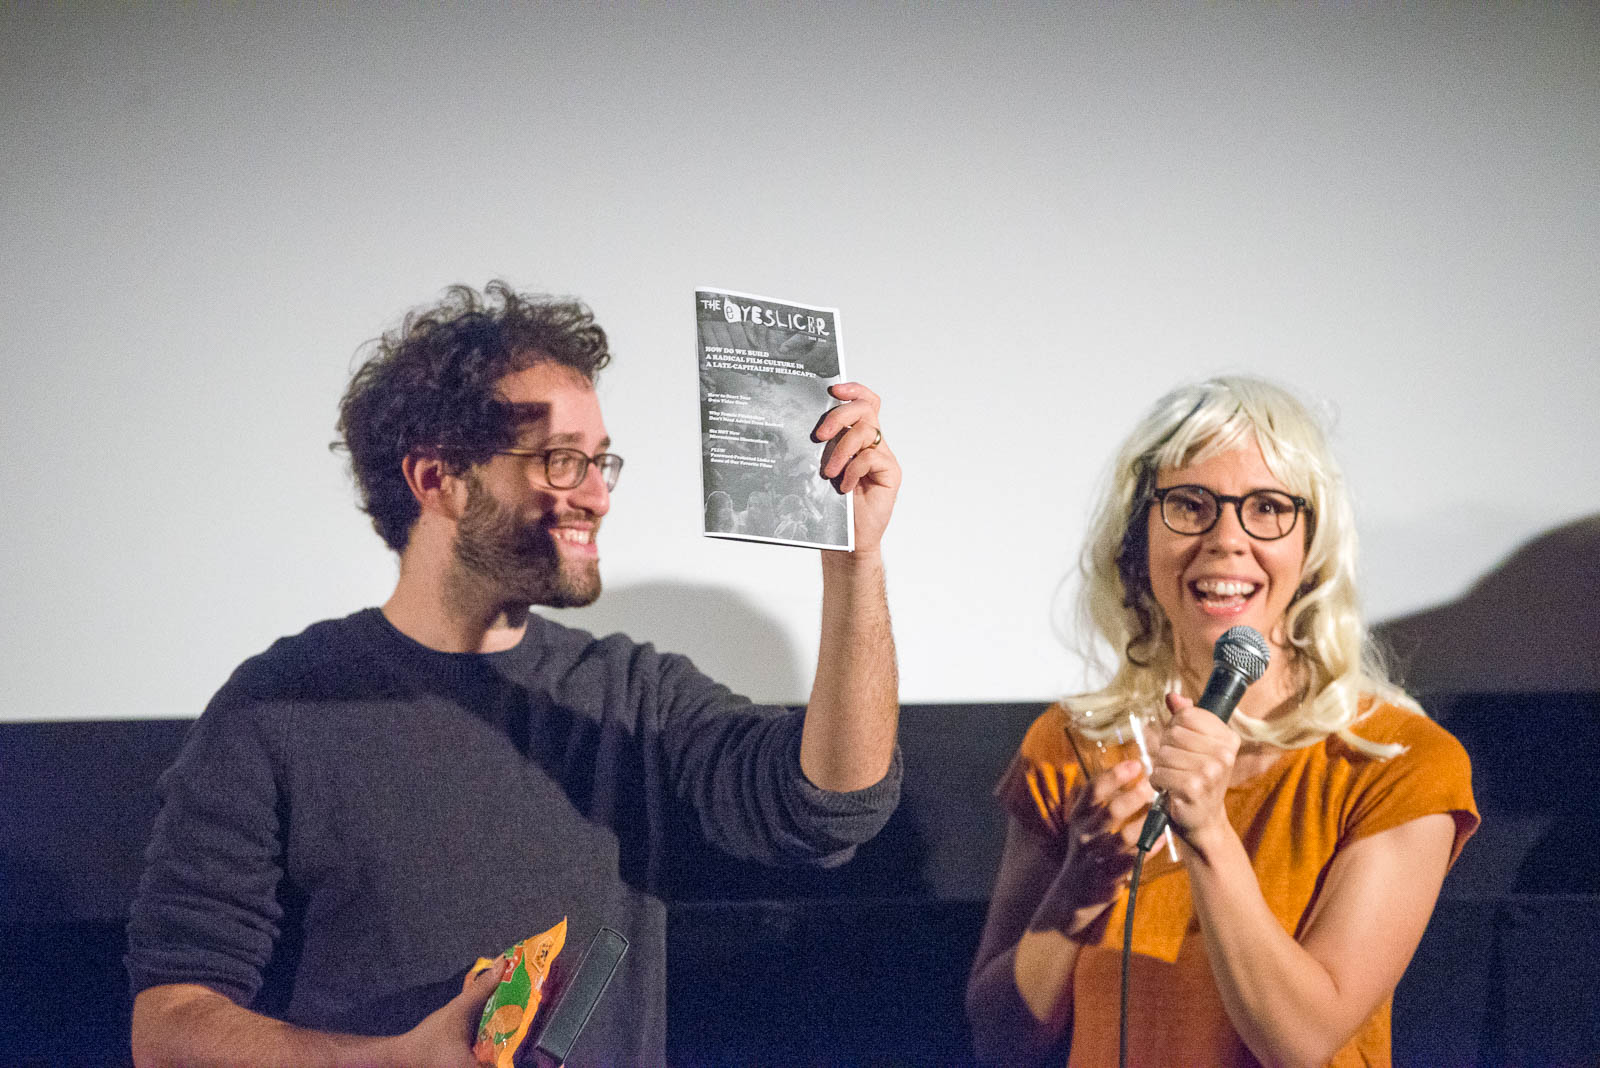 Dan and Vanessa of The Eyeslicer showing one of the costume contest prizes, a copy of a zine